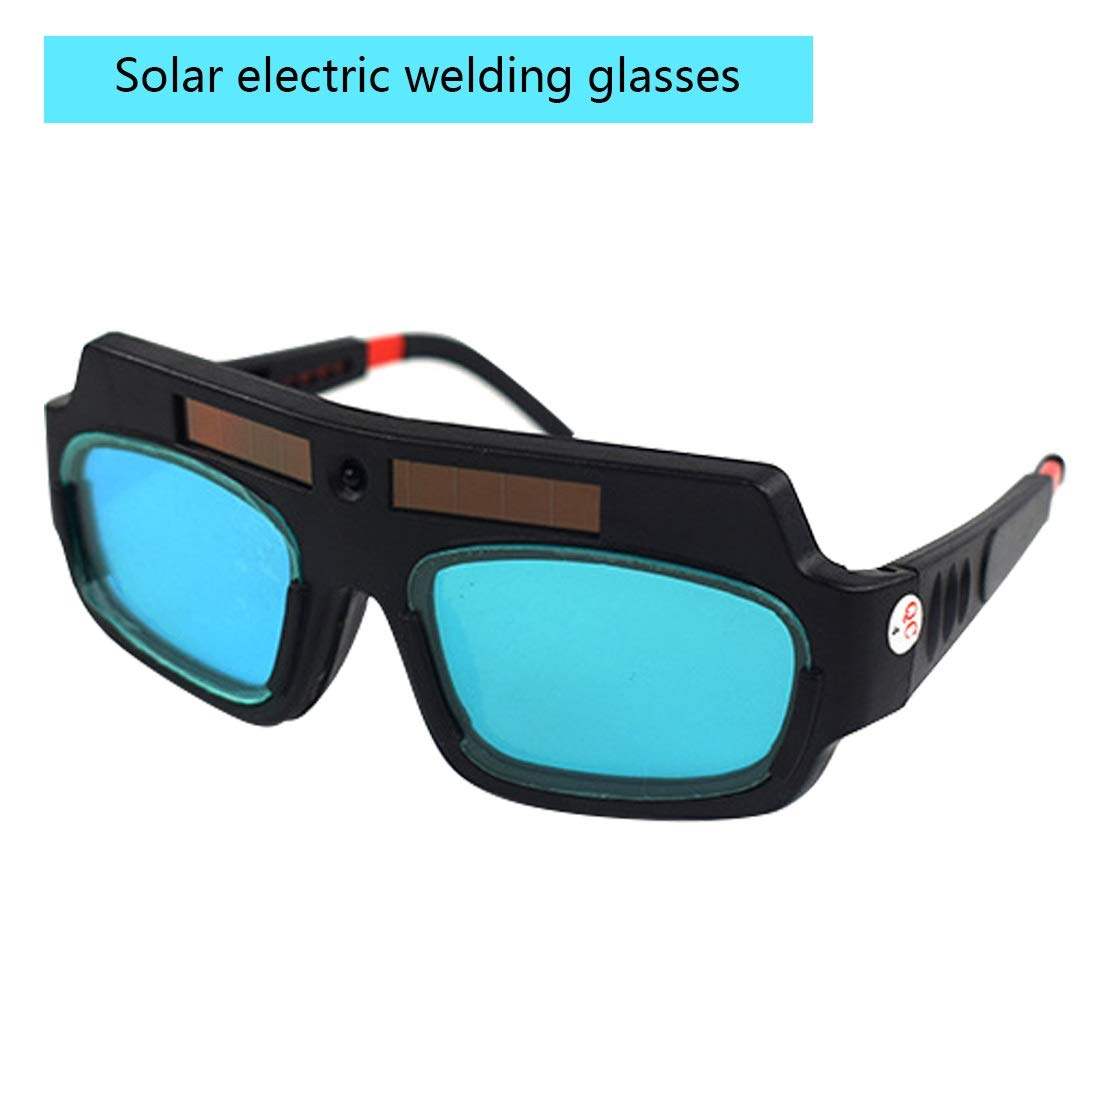 YUANYUAN521 Argon Arc Welding Glasses 1pc Solar Powered Auto Darkening Welding Helmet Mask Welding Glass Welding Glasses by YUANYUAN521